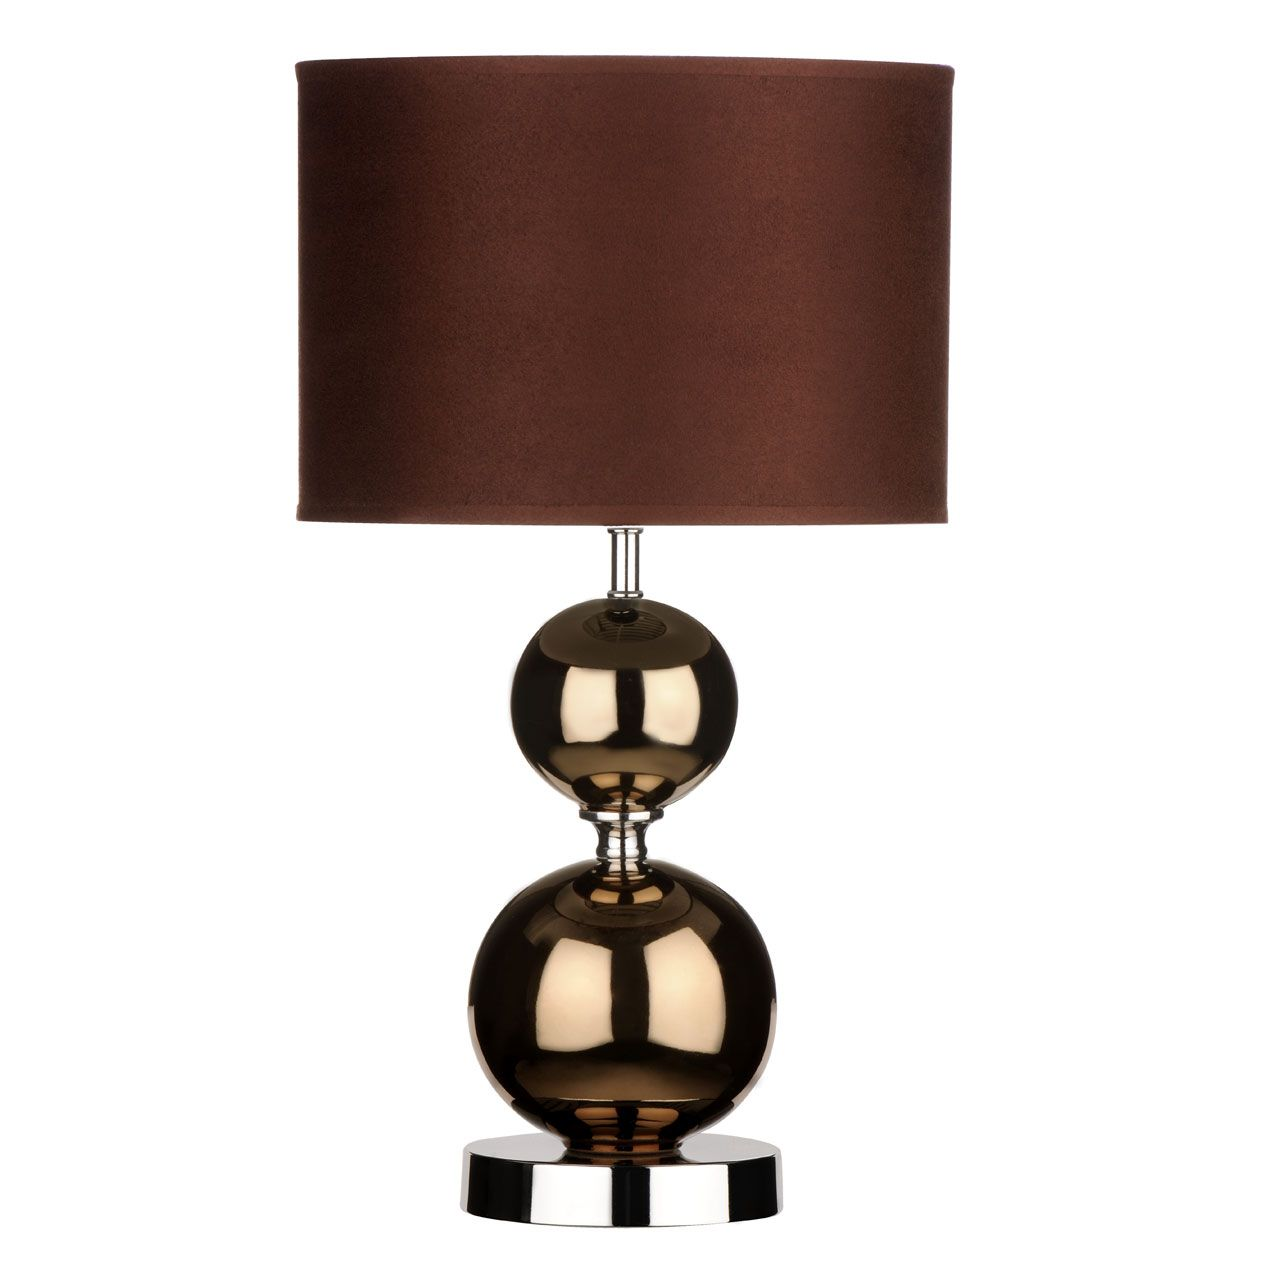 Chic style of nightstand lamps for home decor target floor lamp funky unusual and modern table lamps online with zurleys uk in our range of cheaply priced table lamps you can find affordable quality table lamp online geotapseo Image collections